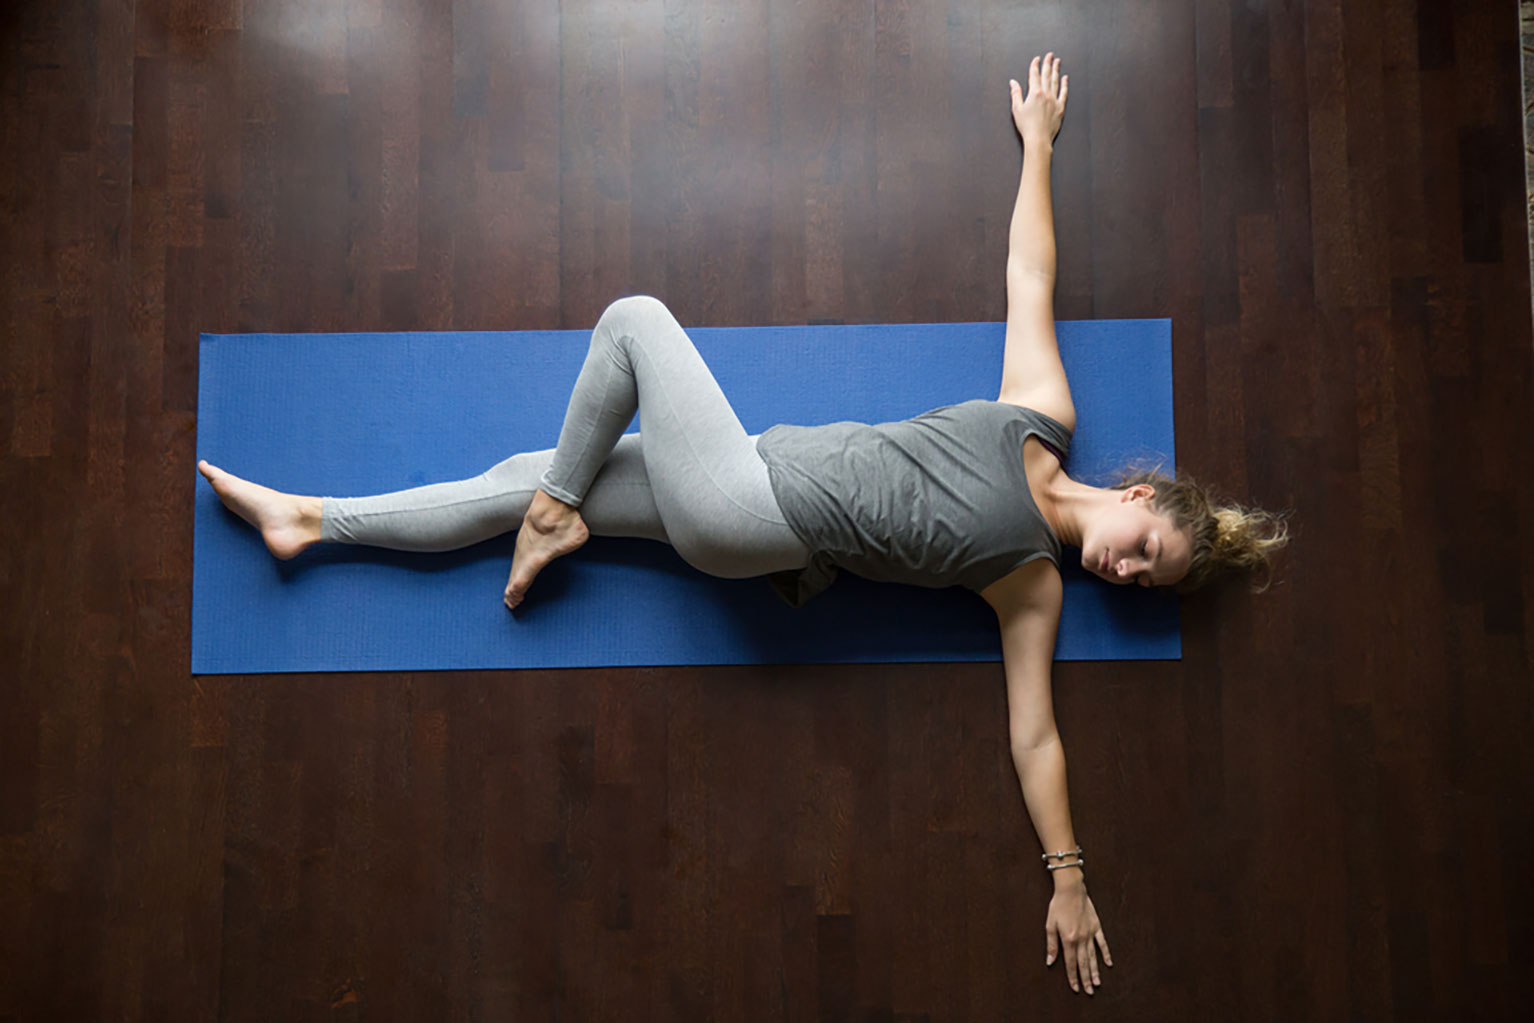 Young woman practicing the supine twist yoga pose